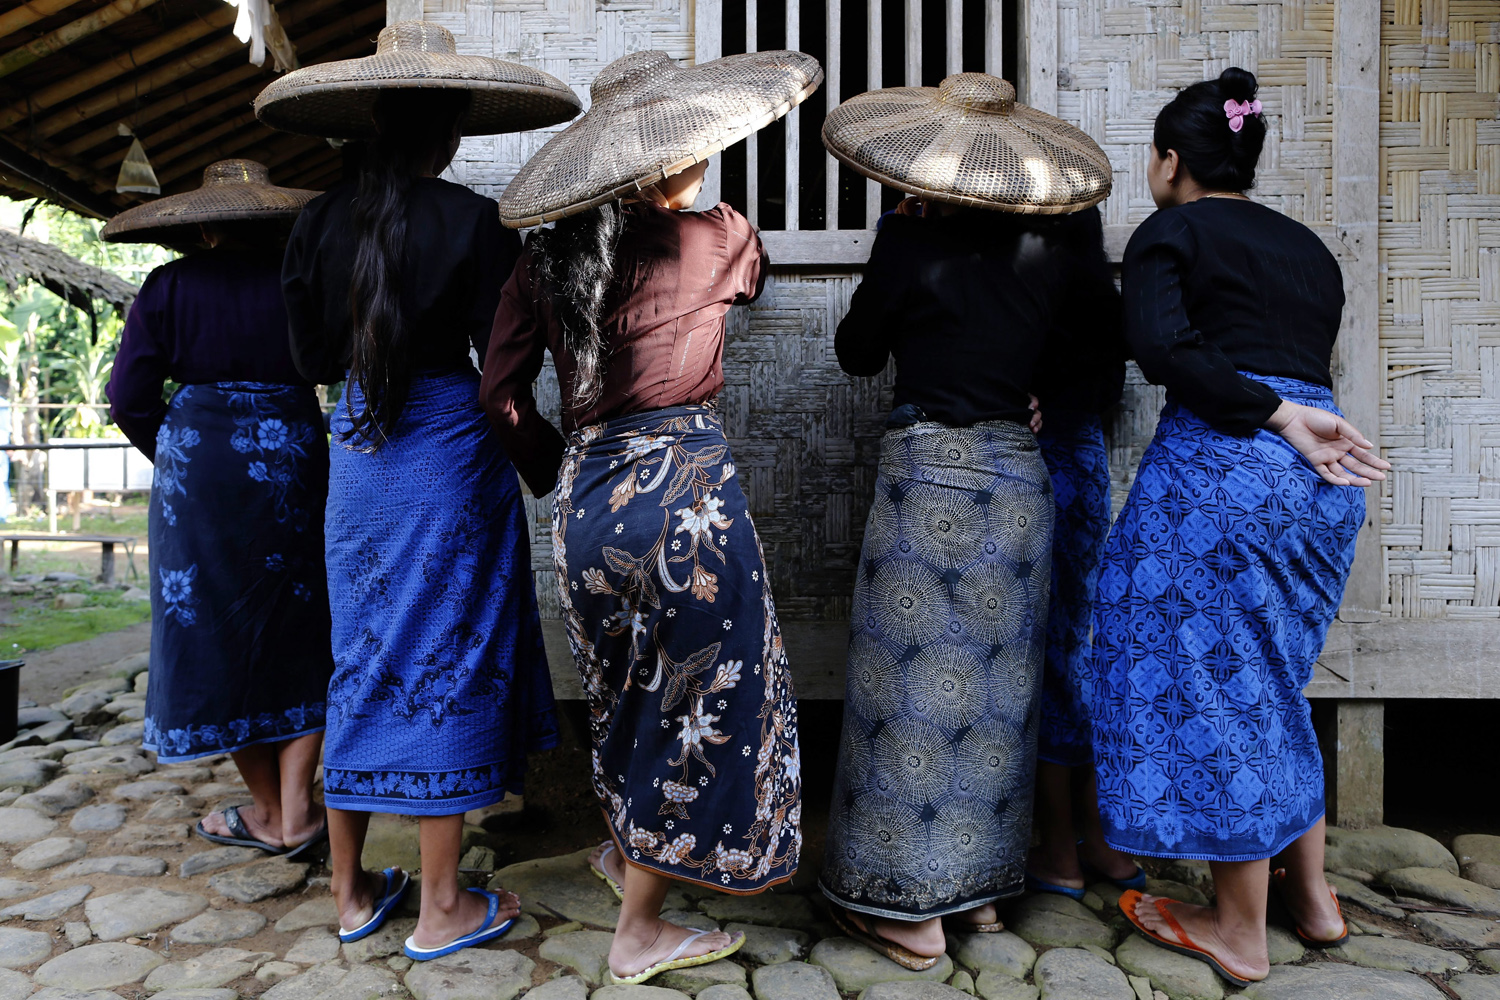 Apr. 9, 2014. Indonesian Baduy tribe women wait for their turn to cast their ballots during the parliamentary elections at a polling station in Kanekes village, Lebak, Banten province, Indonesia, Polls opened on 09 April in Indonesia's parliamentary elections amid expectations of an opposition victory.